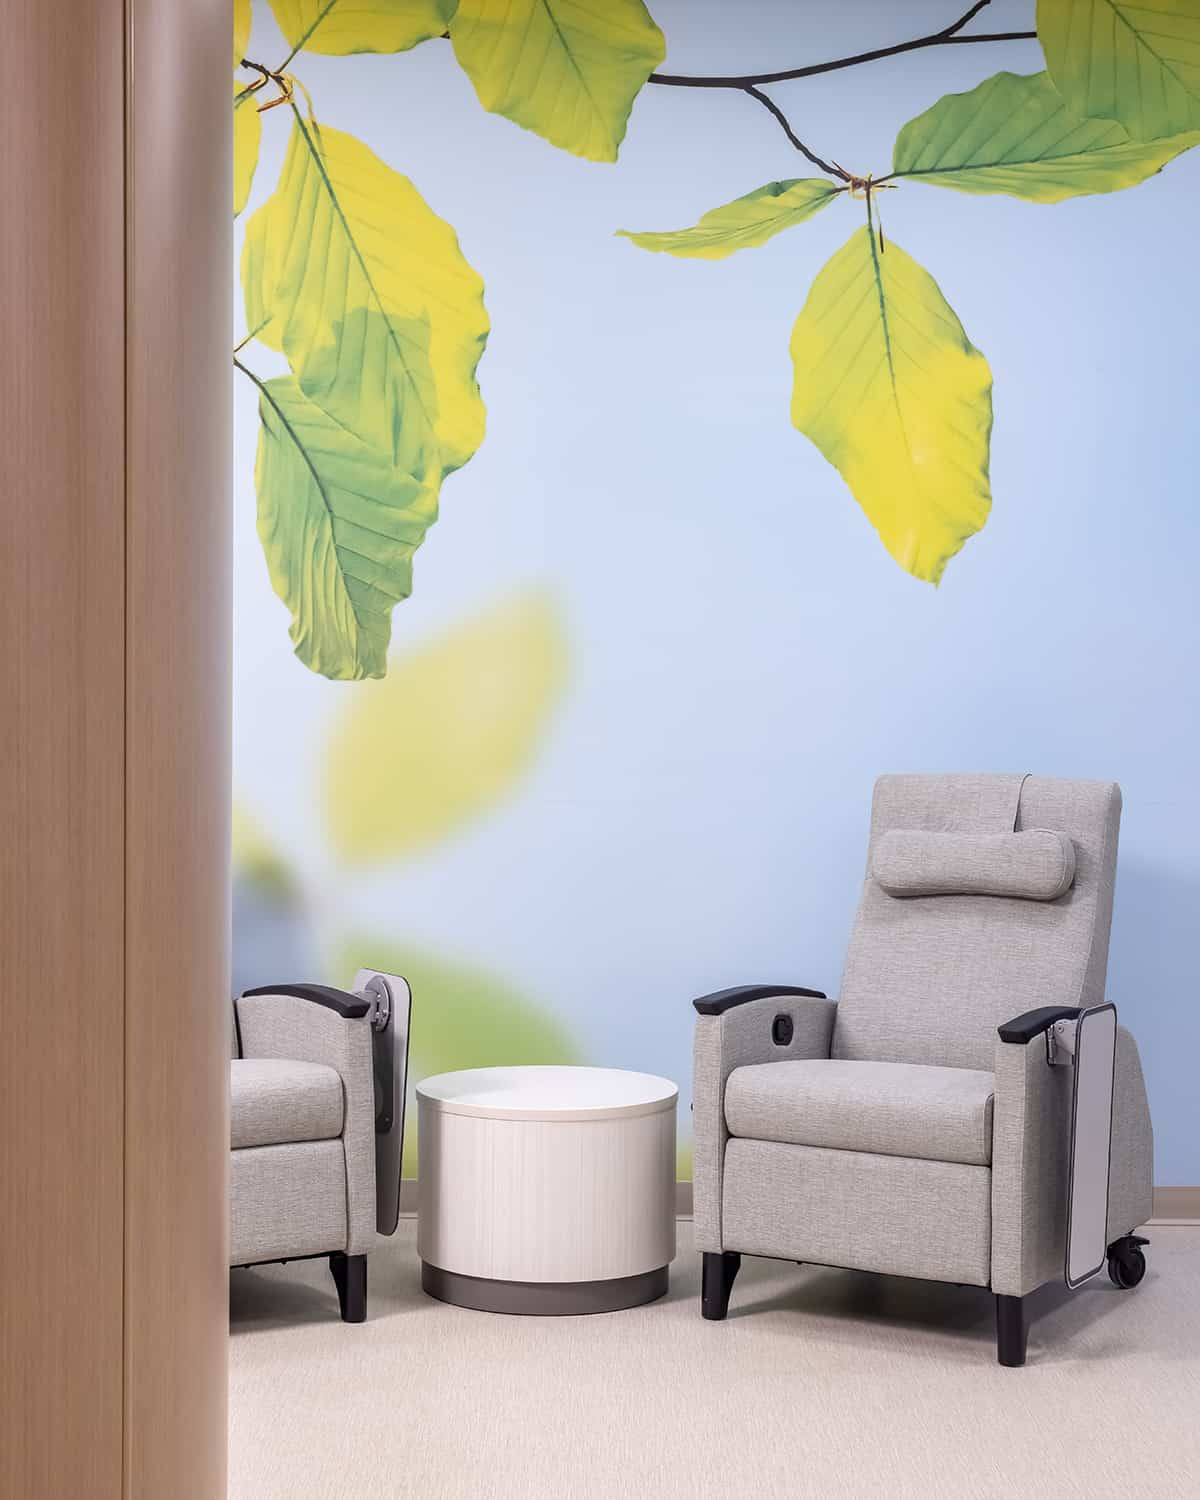 Quiet seating area with comfortable recliner and soothing wall mural depicting leaves.